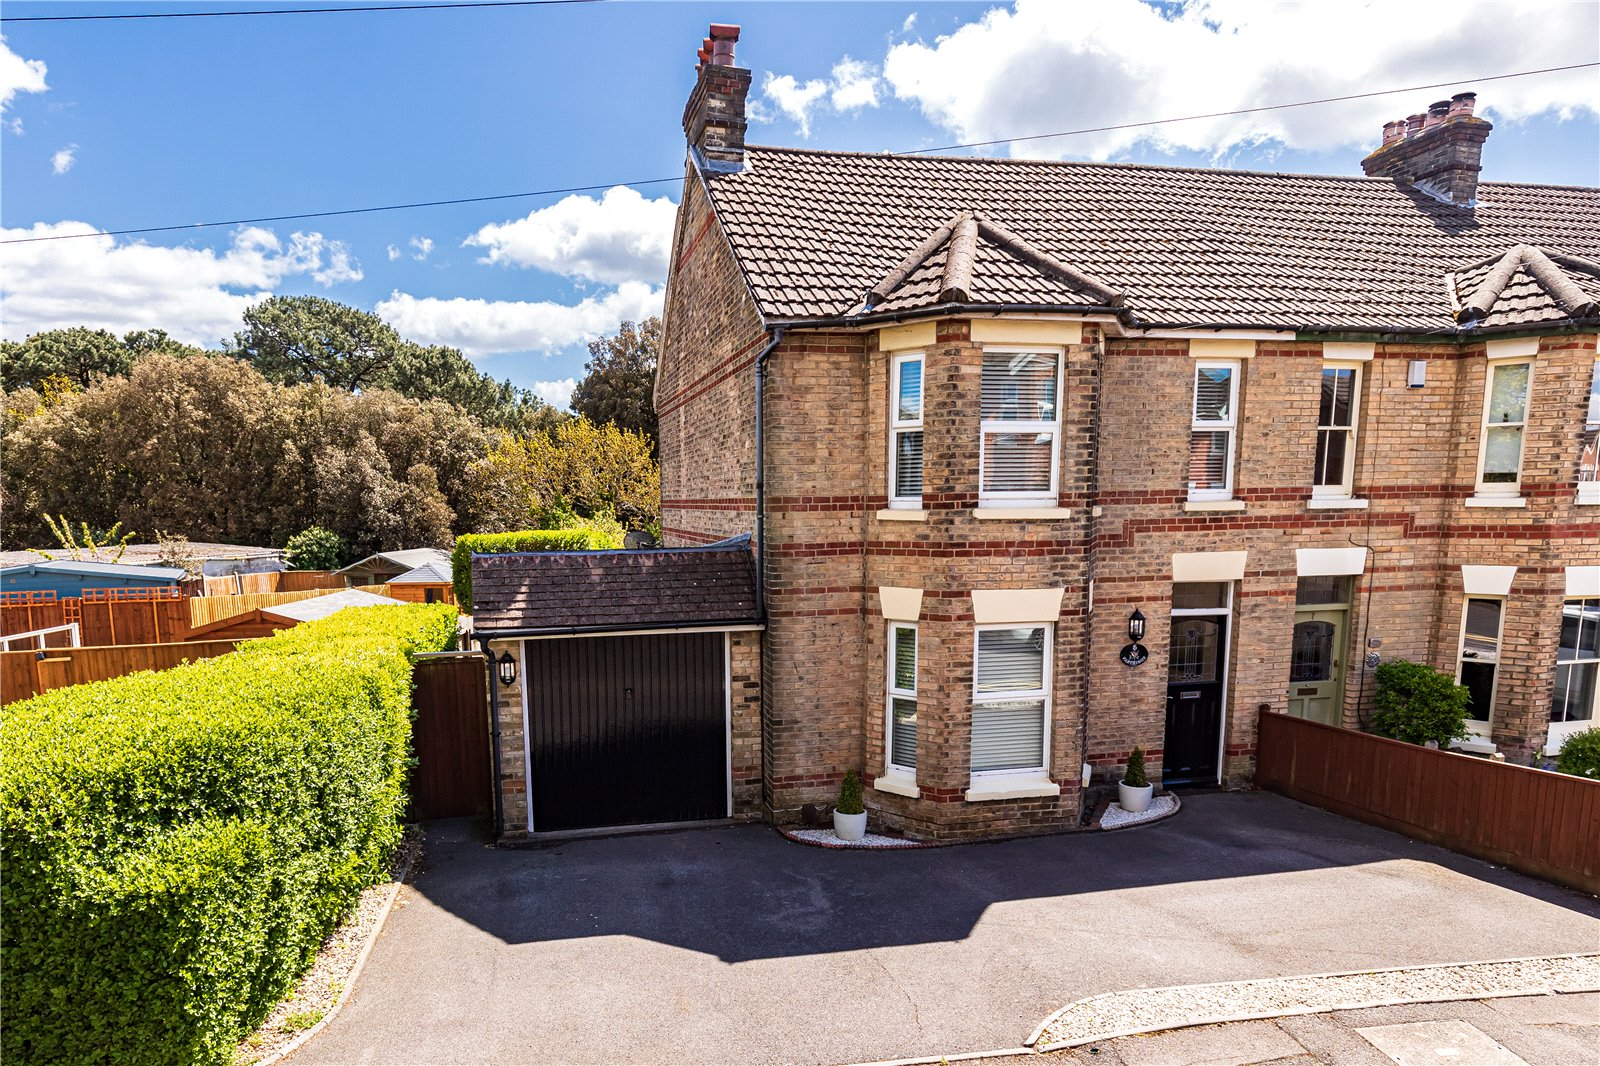 3 bed house for sale in Doyne Road, Penn Hill  - Property Image 1